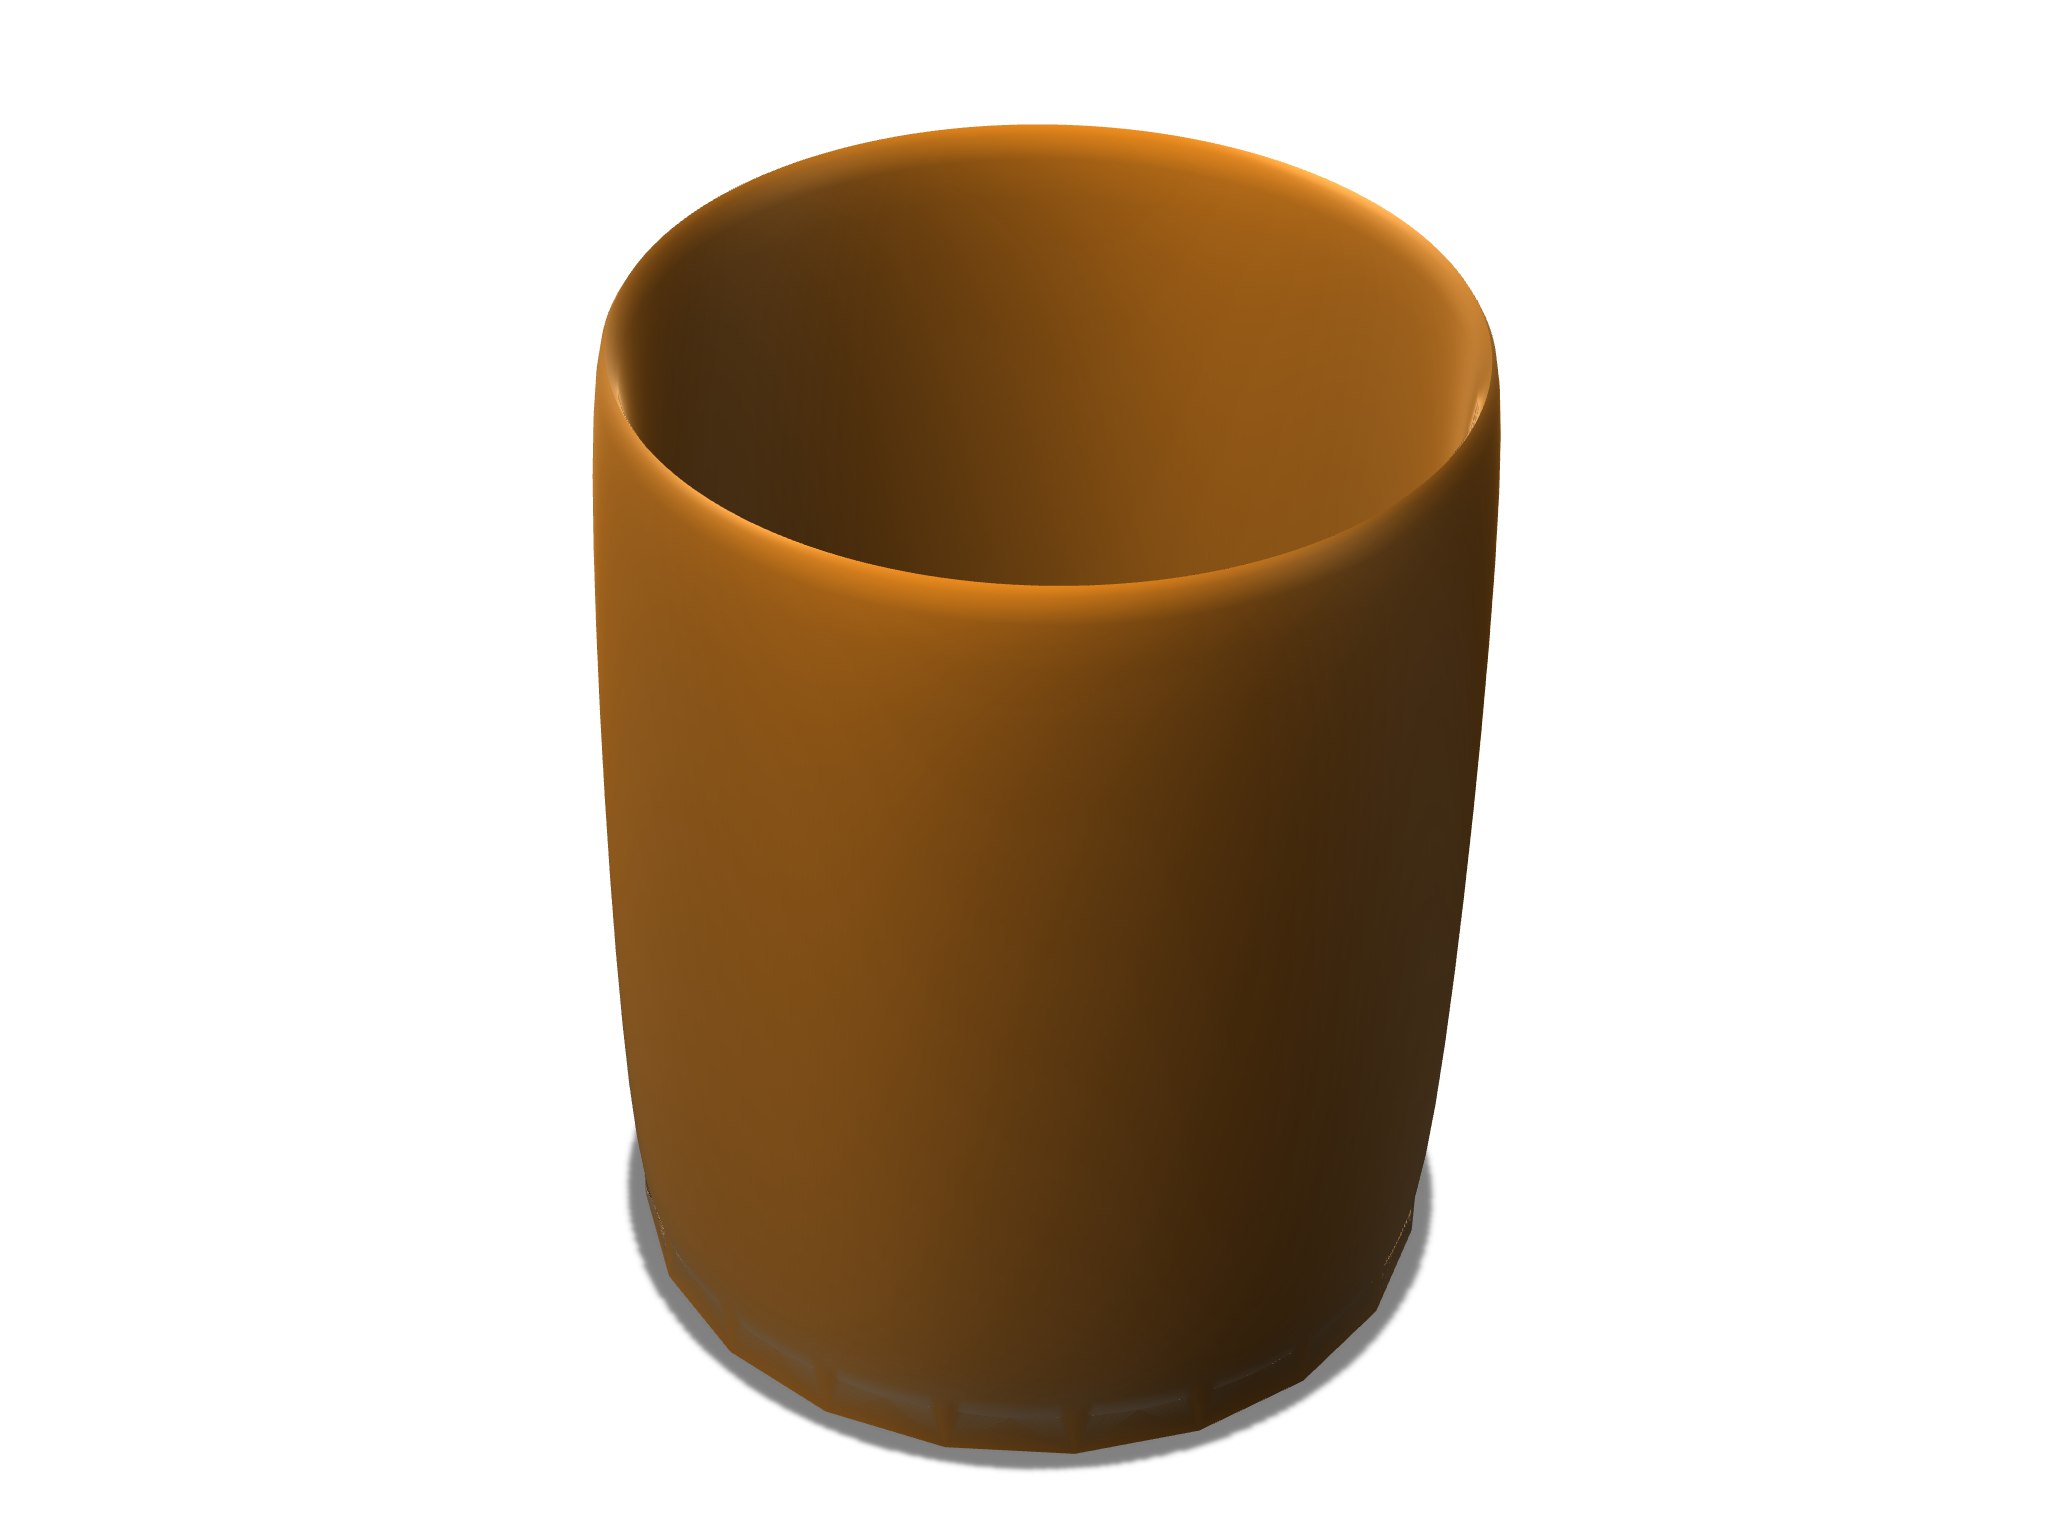 Bathroom cup - 3D design by Marko on Mar 5, 2018